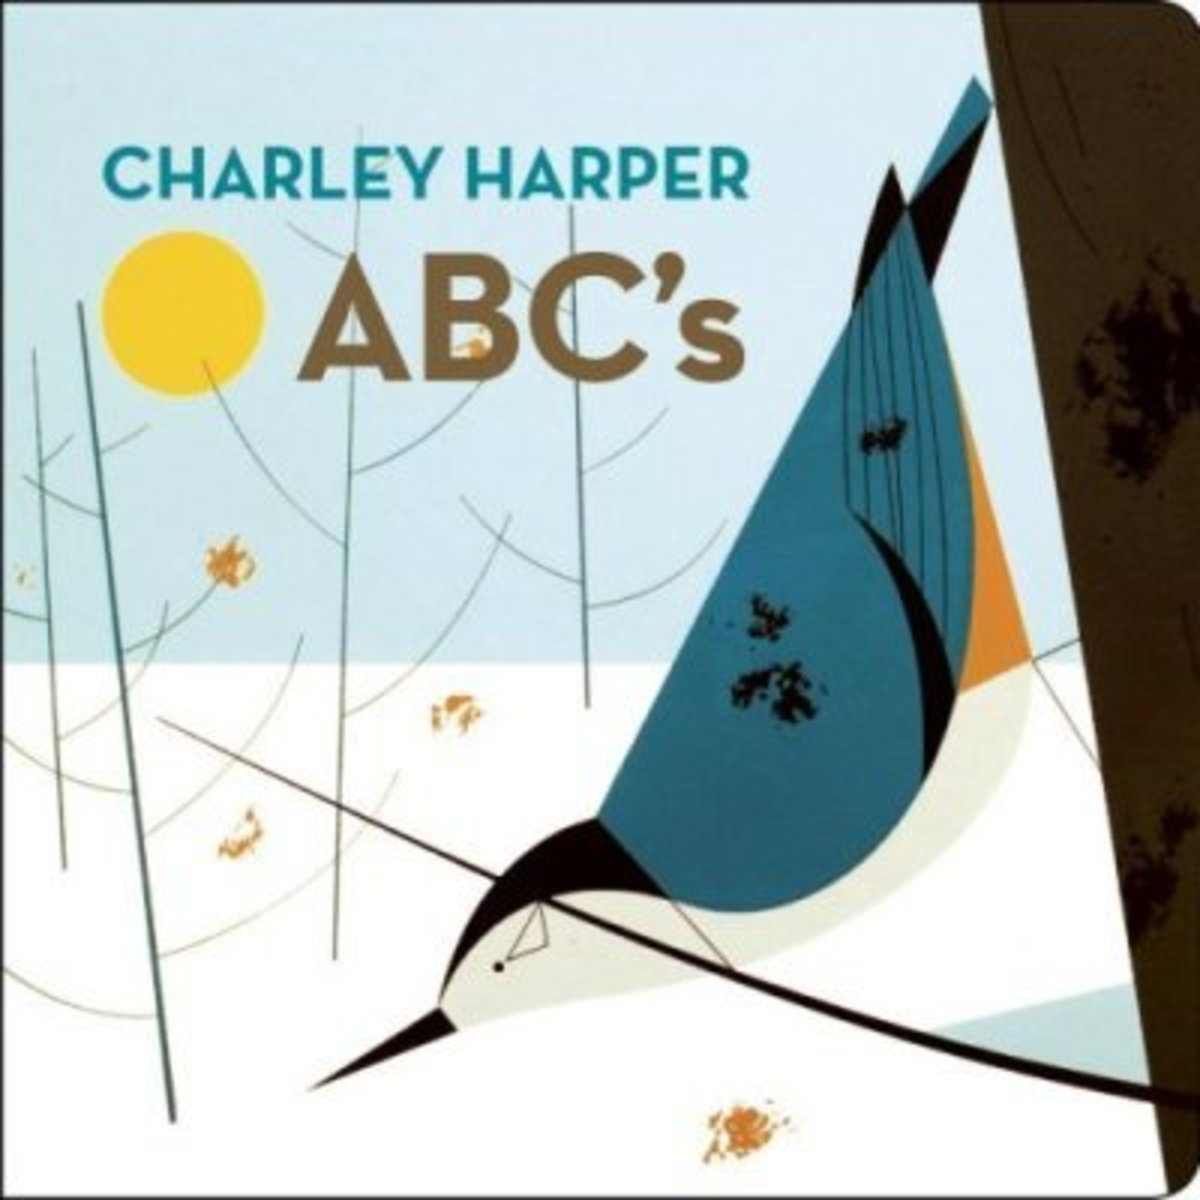 Charlie Harper's ABCs is a wonder children's board  book by the late artist Charlie Harper, who worked in Ohio and had a background in commercial graphic art.